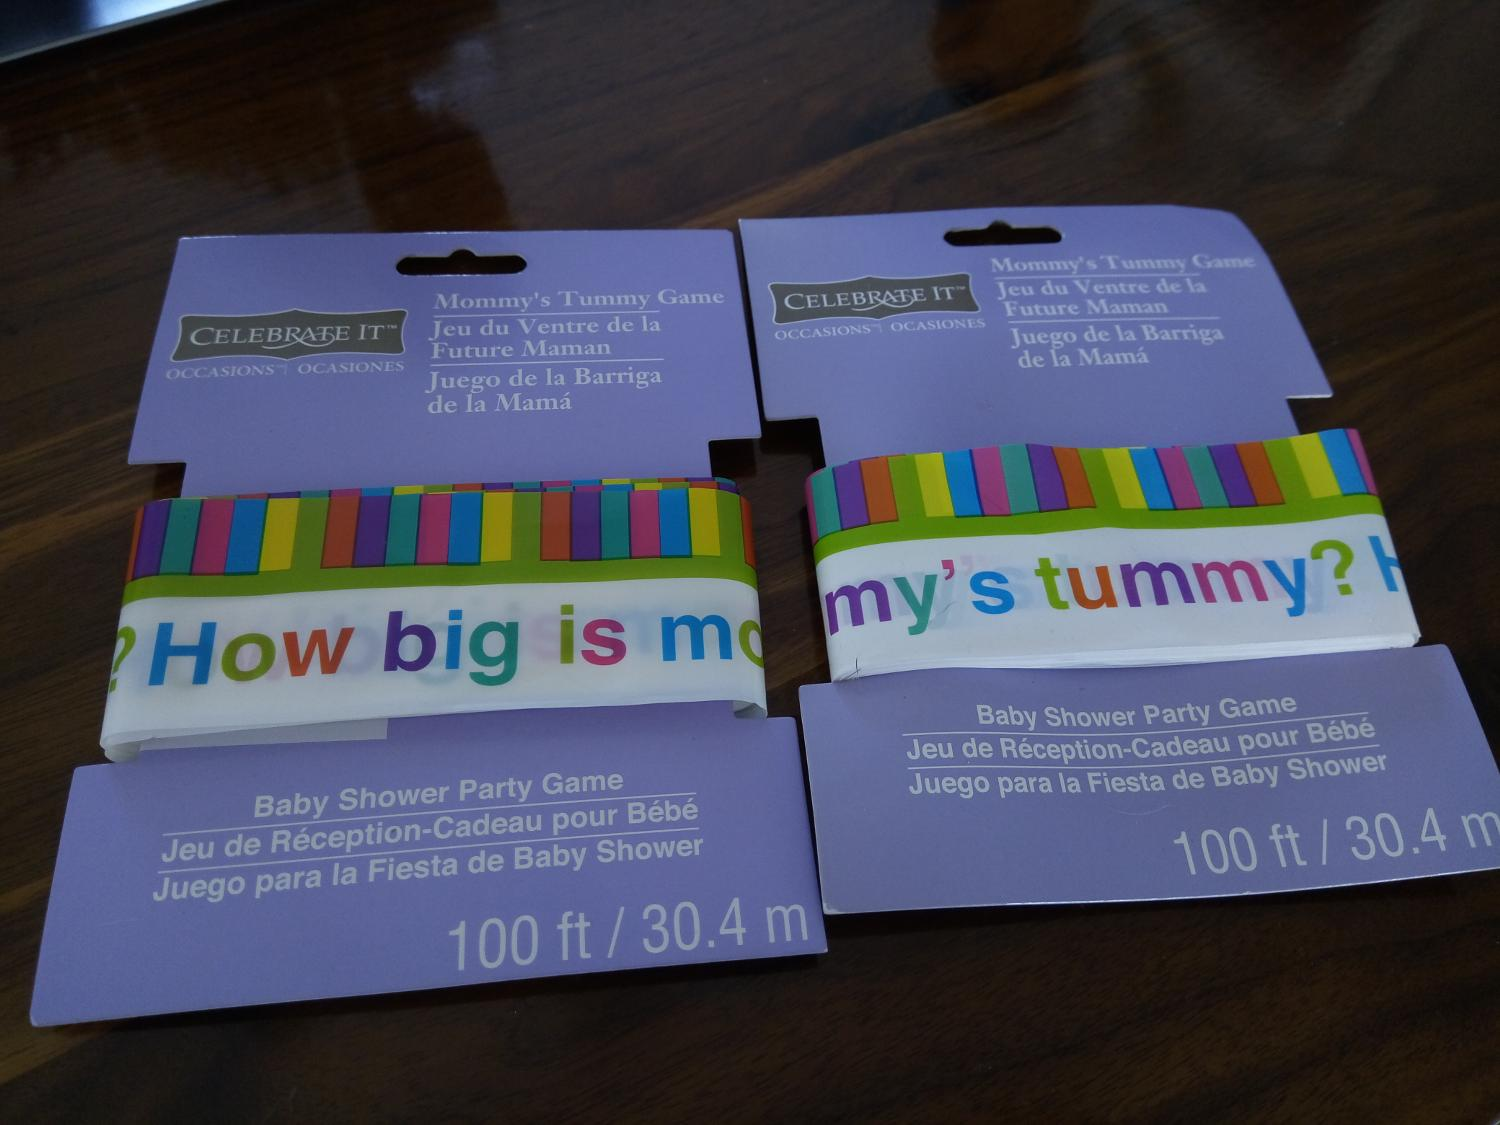 Baby Shower Cadeau Futur Maman baby shower: how big is mommys tummy